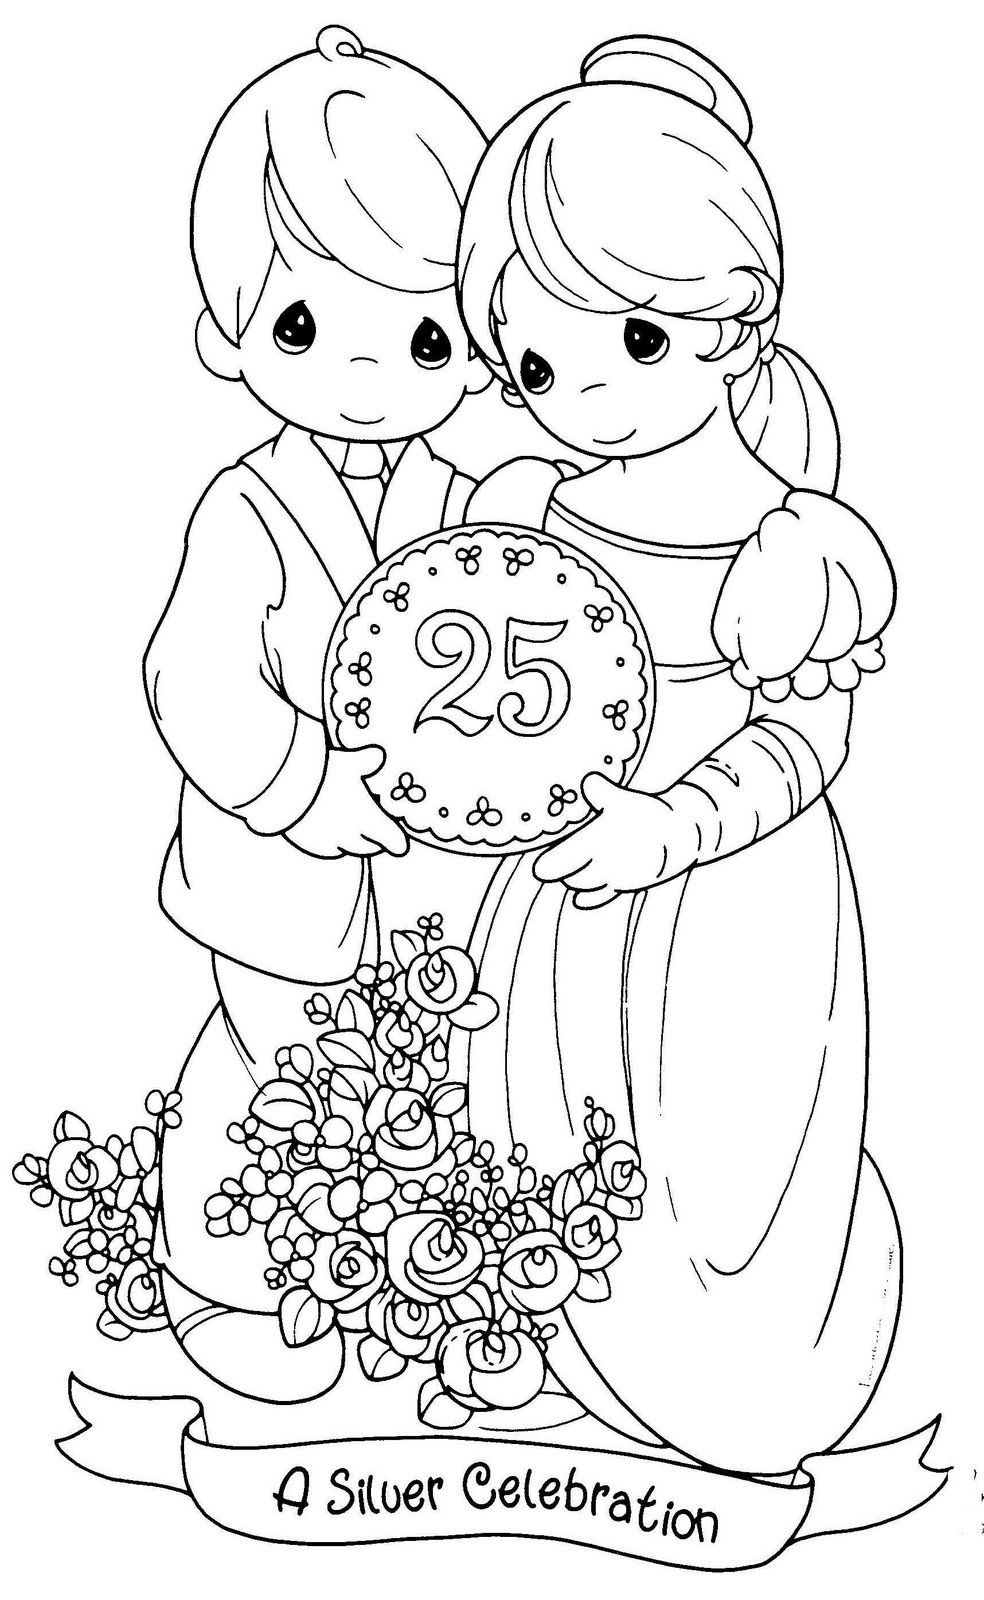 DIBUJOS PARA COLOREAR: PRECIOUS MOMENTS | Coloring pages | Pinterest ...